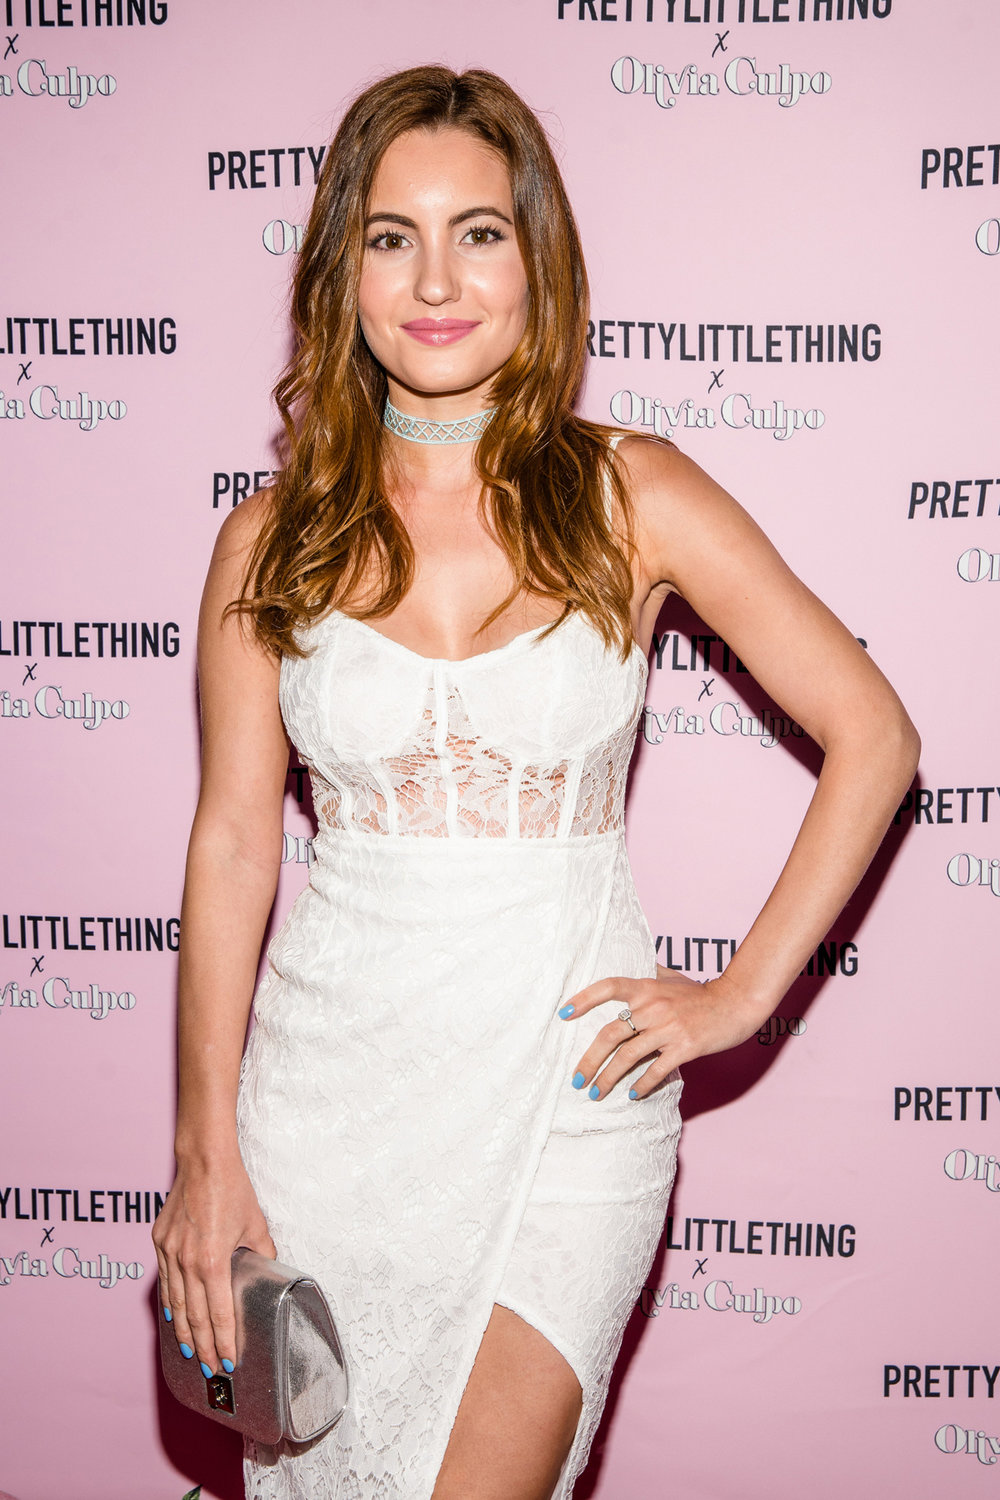 PrettyLittleThing PLT X Olivia Culpo Collection  Celebrity Launch Party Eva  Gutowski.jpg